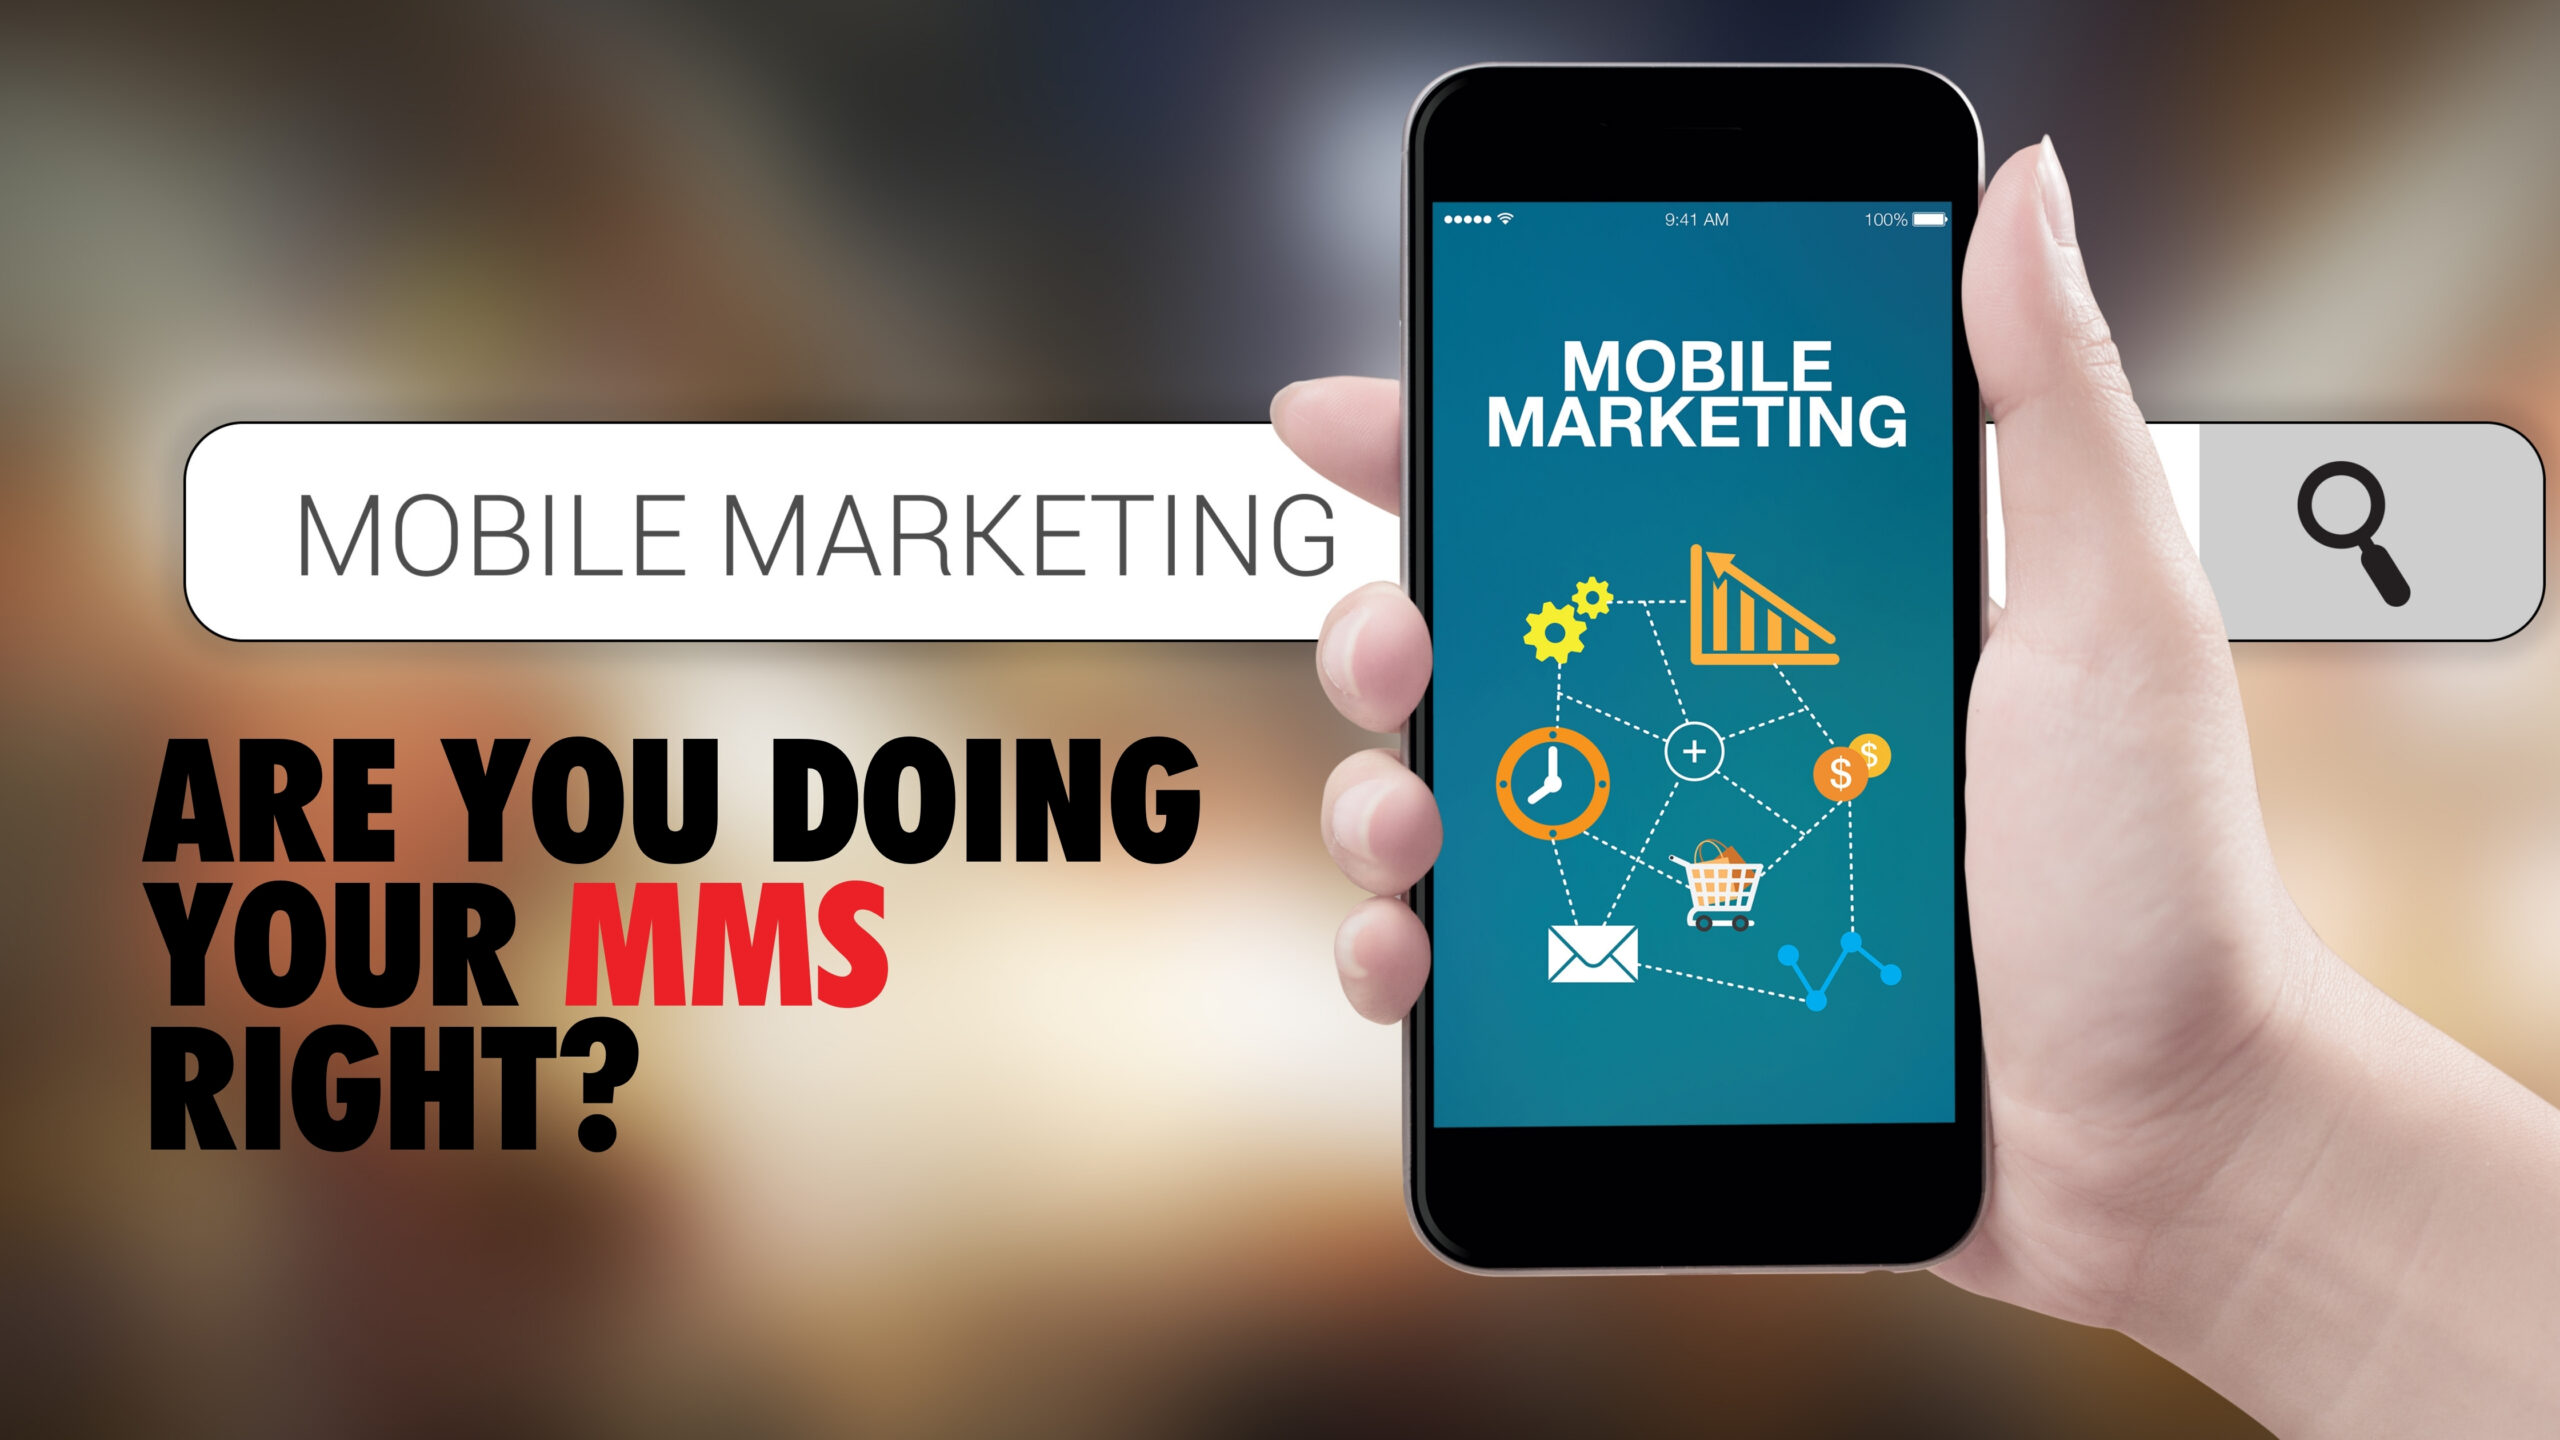 Are You Doing Your MMS Right?